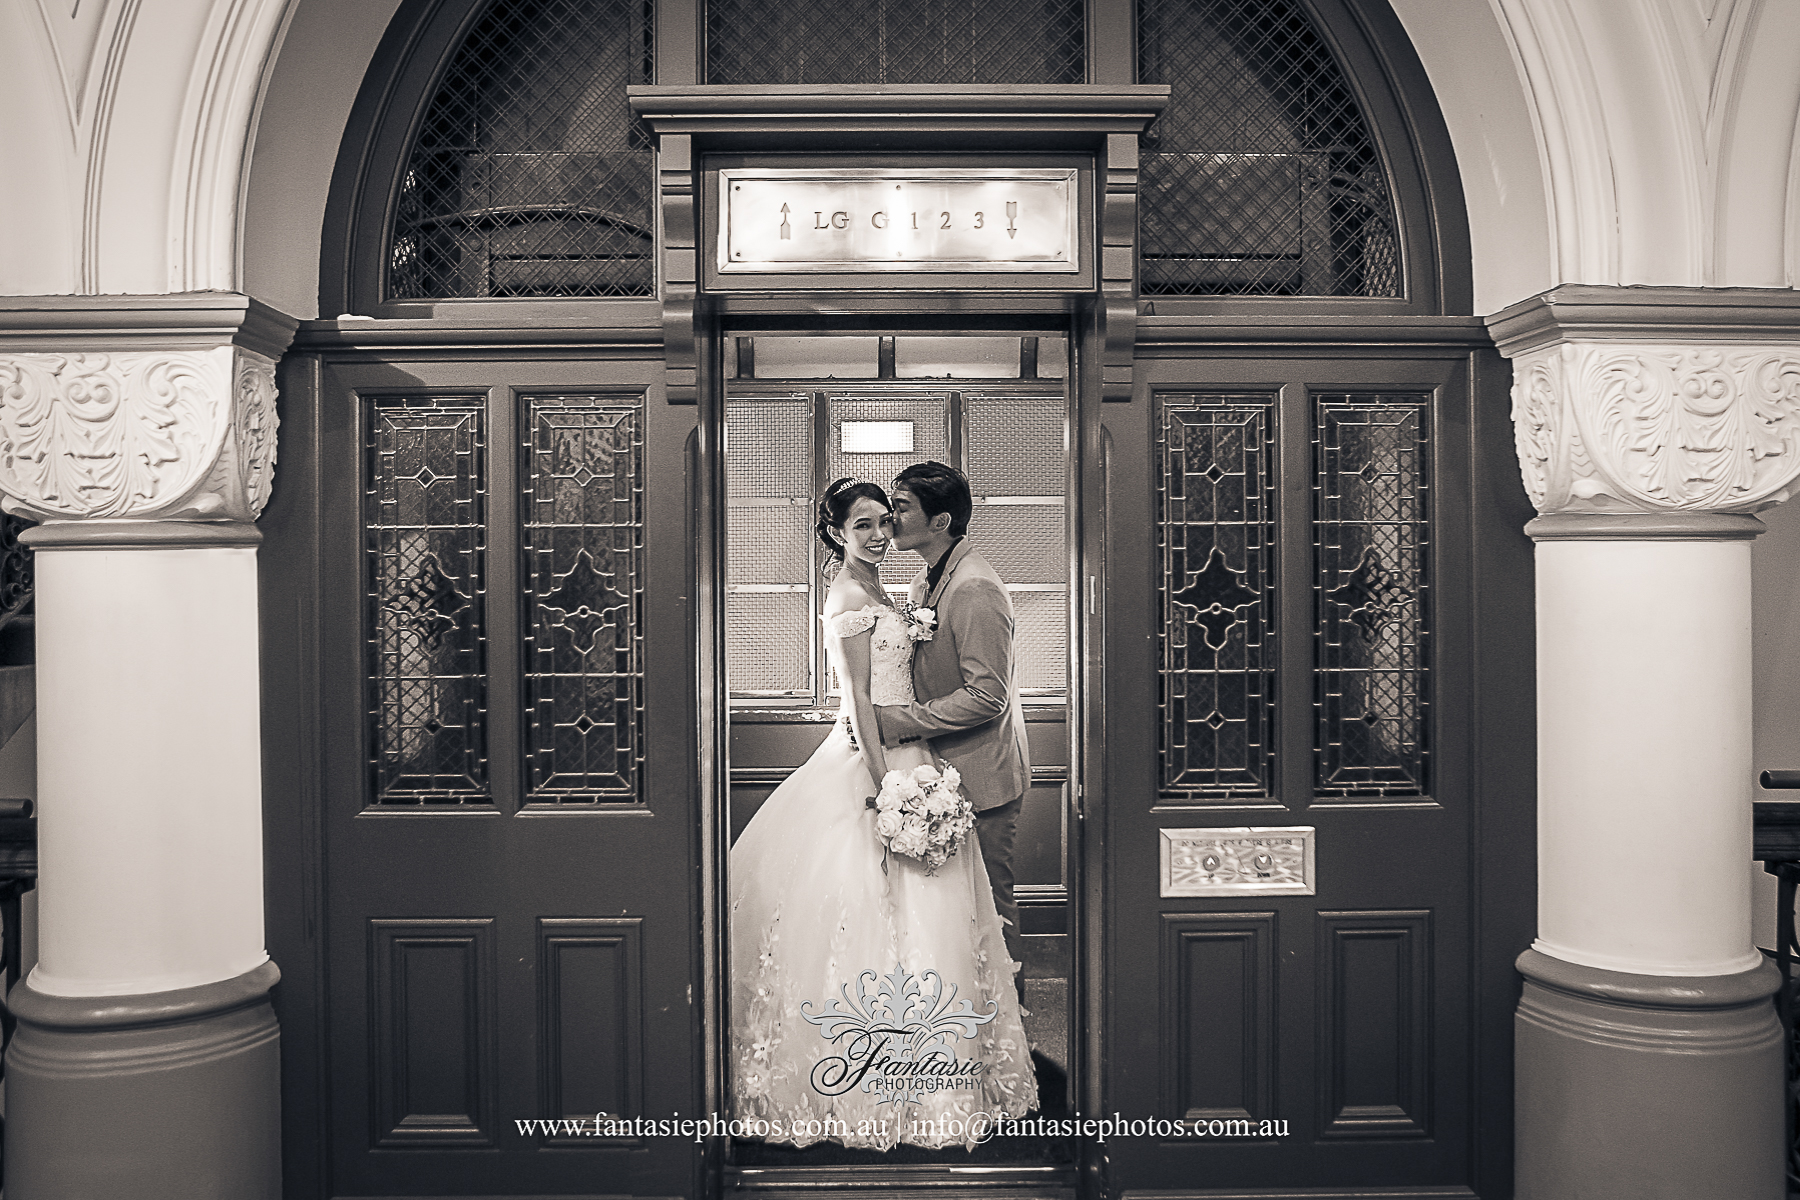 Classic Wedding Photography at Cage Lift Tea Room QVB Wedding Venue